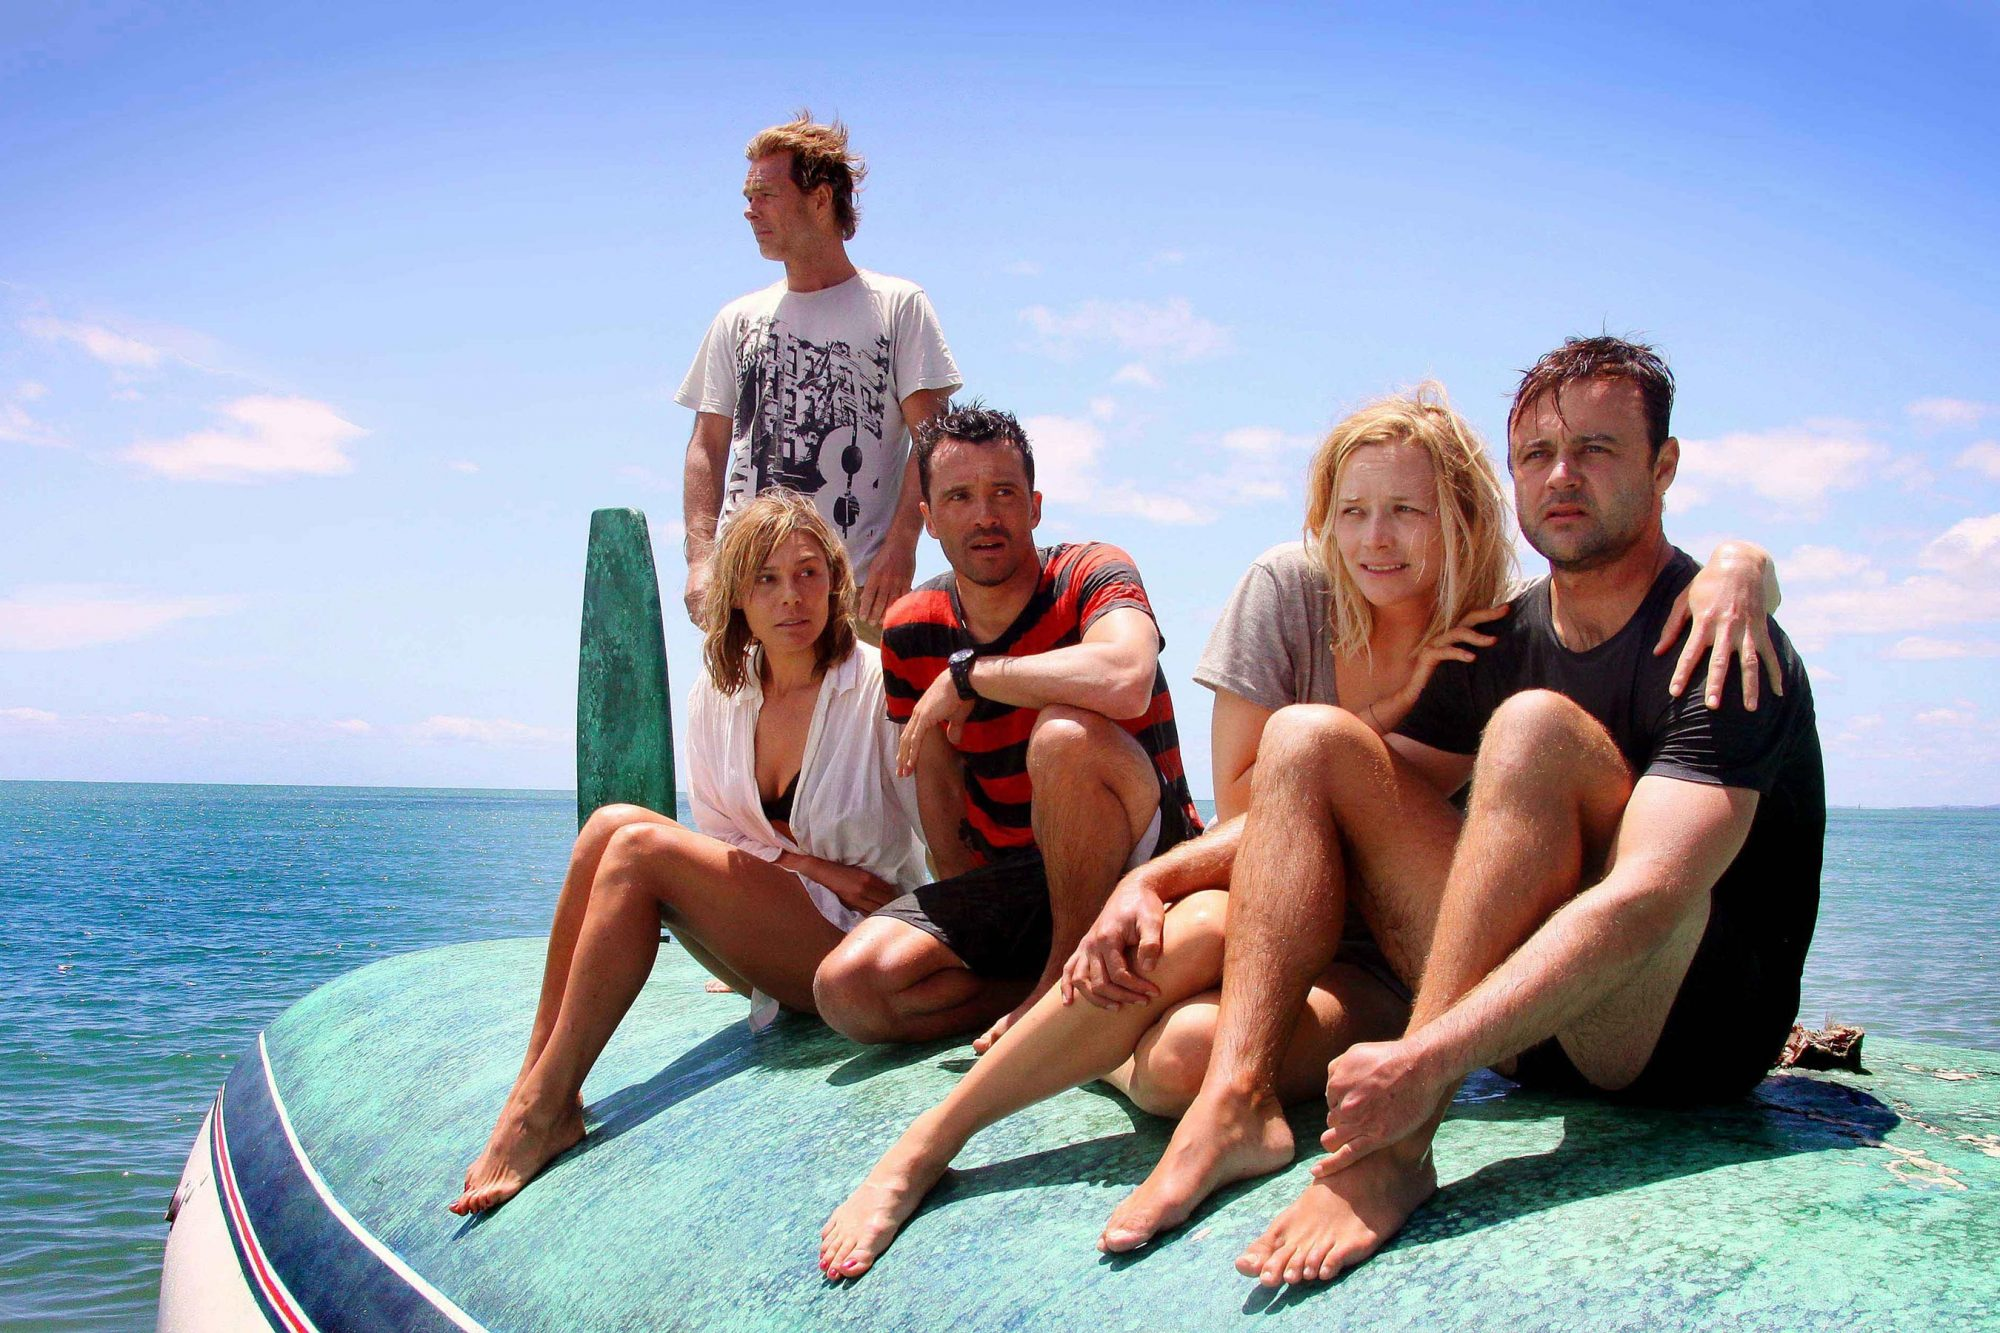 THE REEF, from left: Kieran Darcy-Smith (back), Zoe Naylor, Damian Walshe-Howling, Adrienne Pickerin